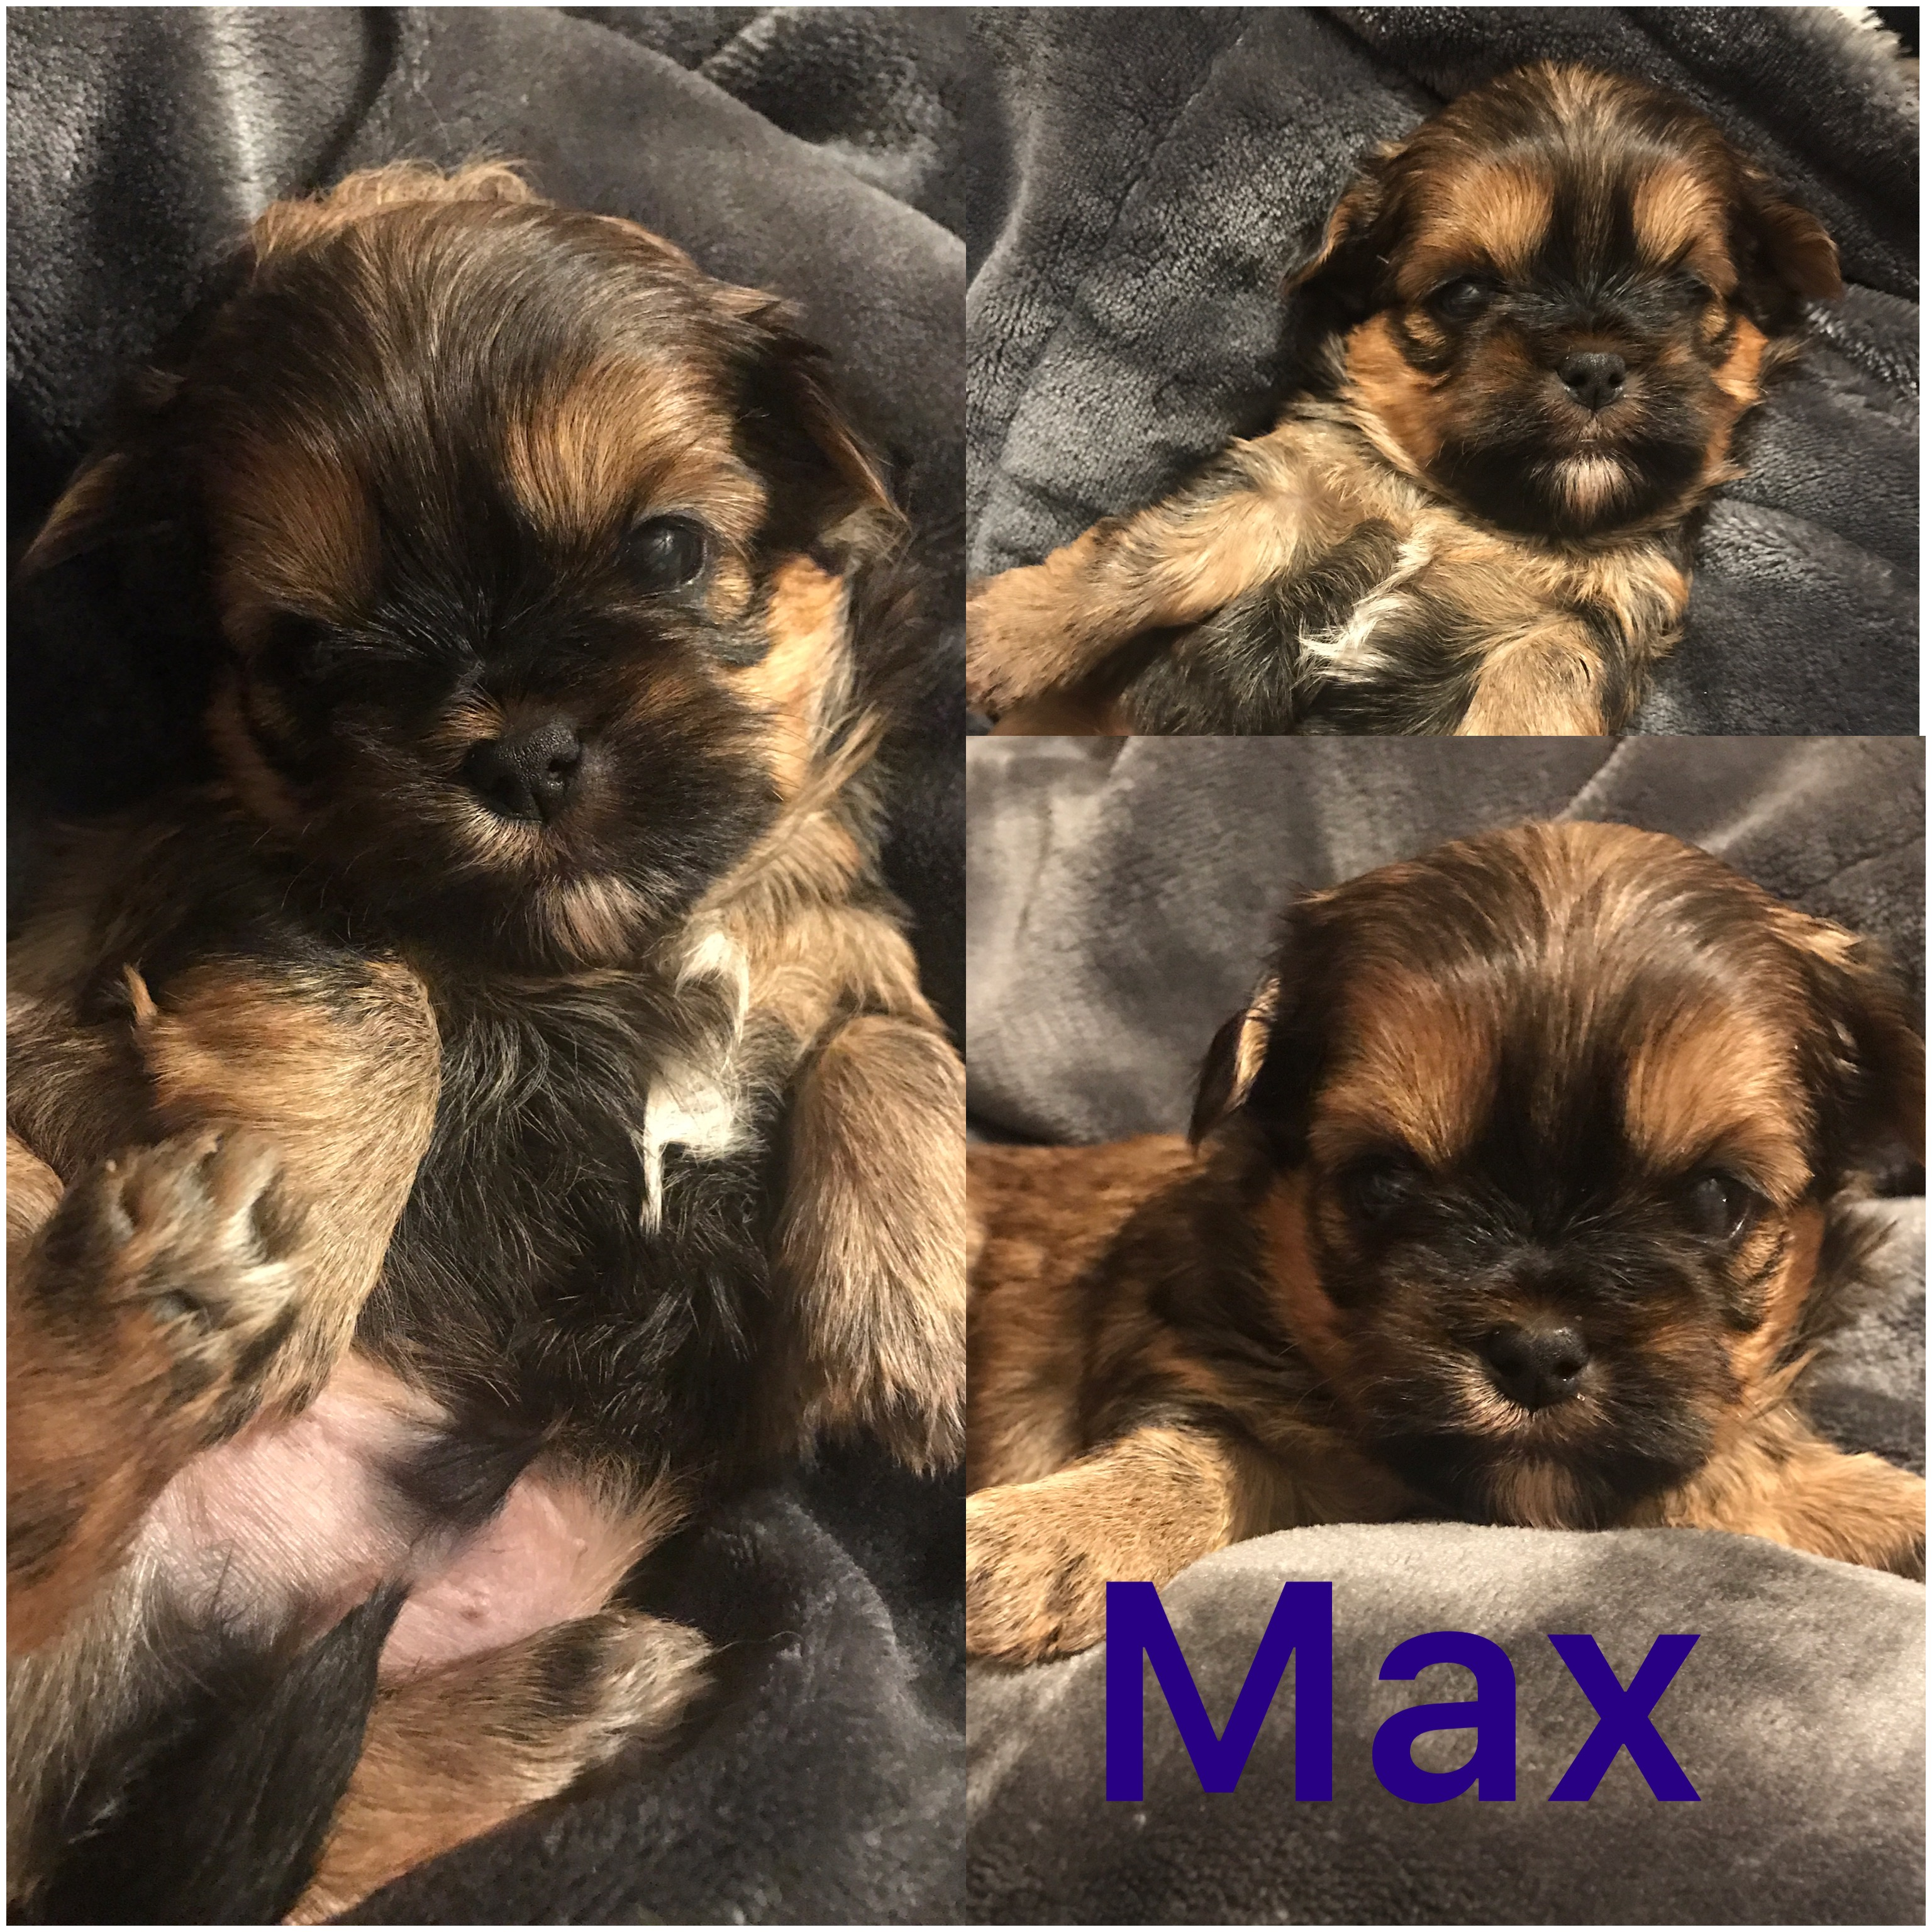 Max is ADOPTED by Deb and family